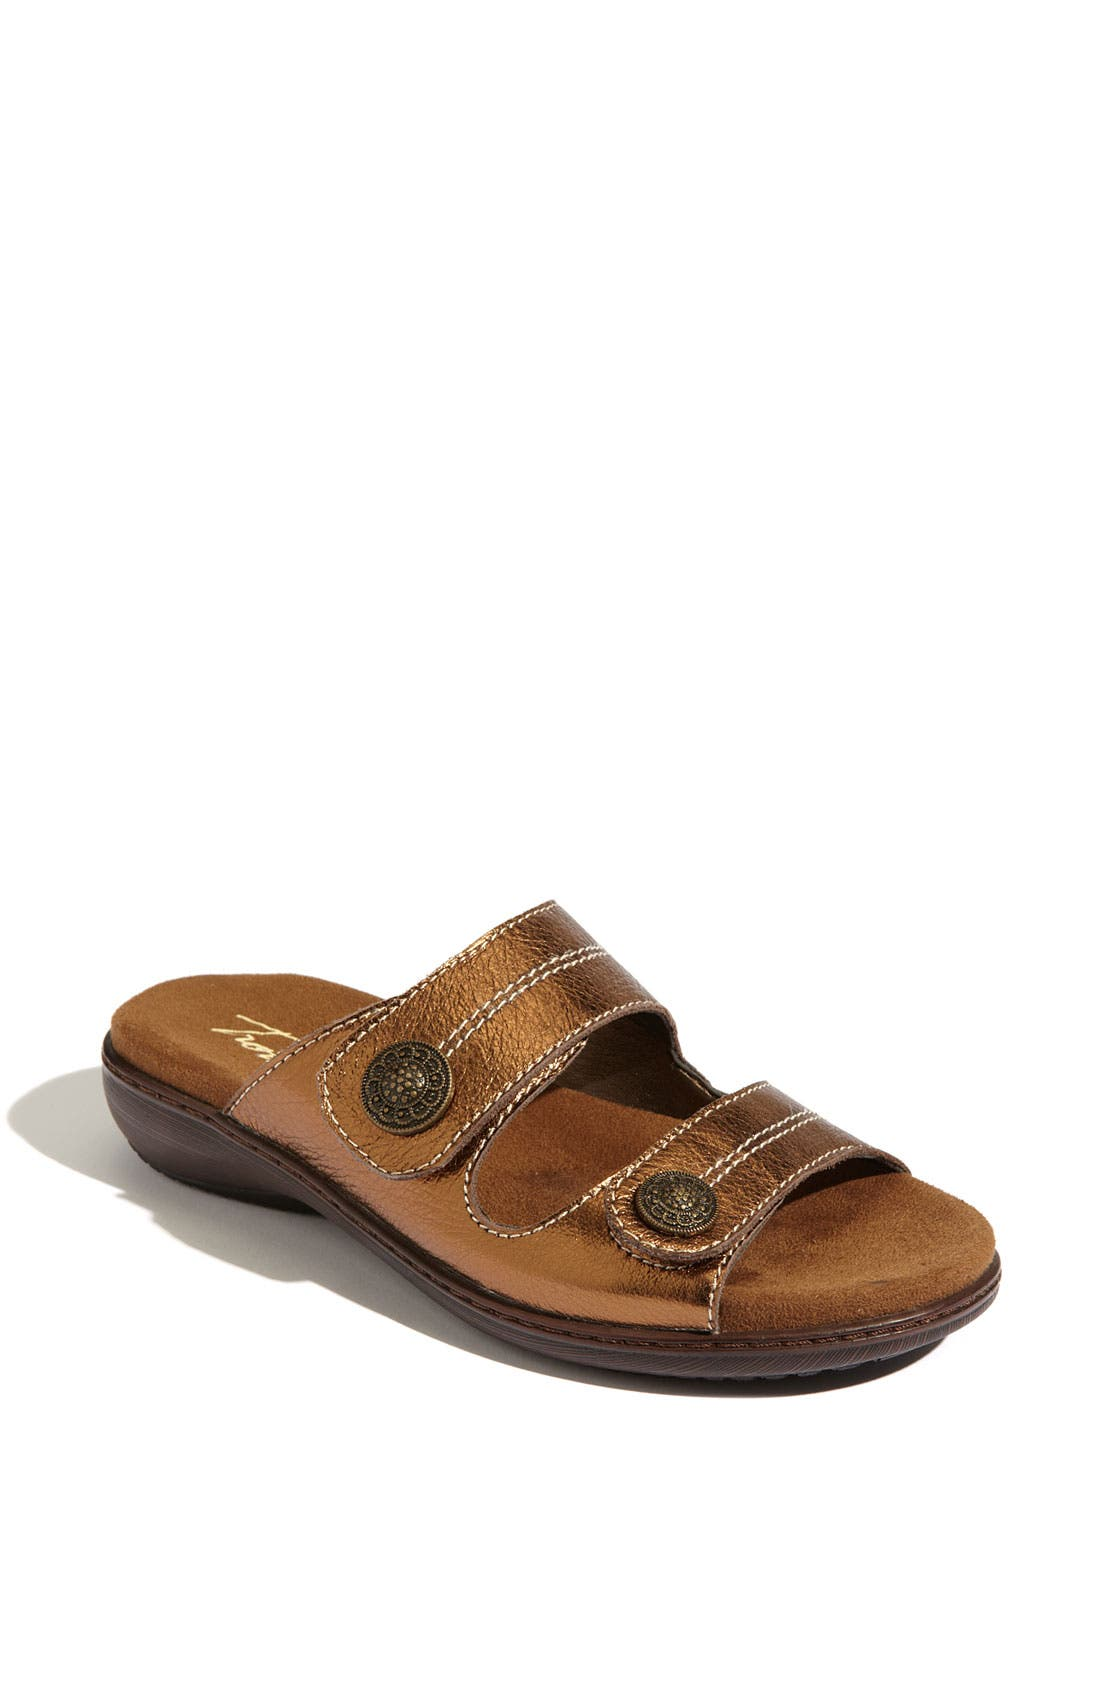 Alternate Image 1 Selected - Trotters 'Kassie' Sandal